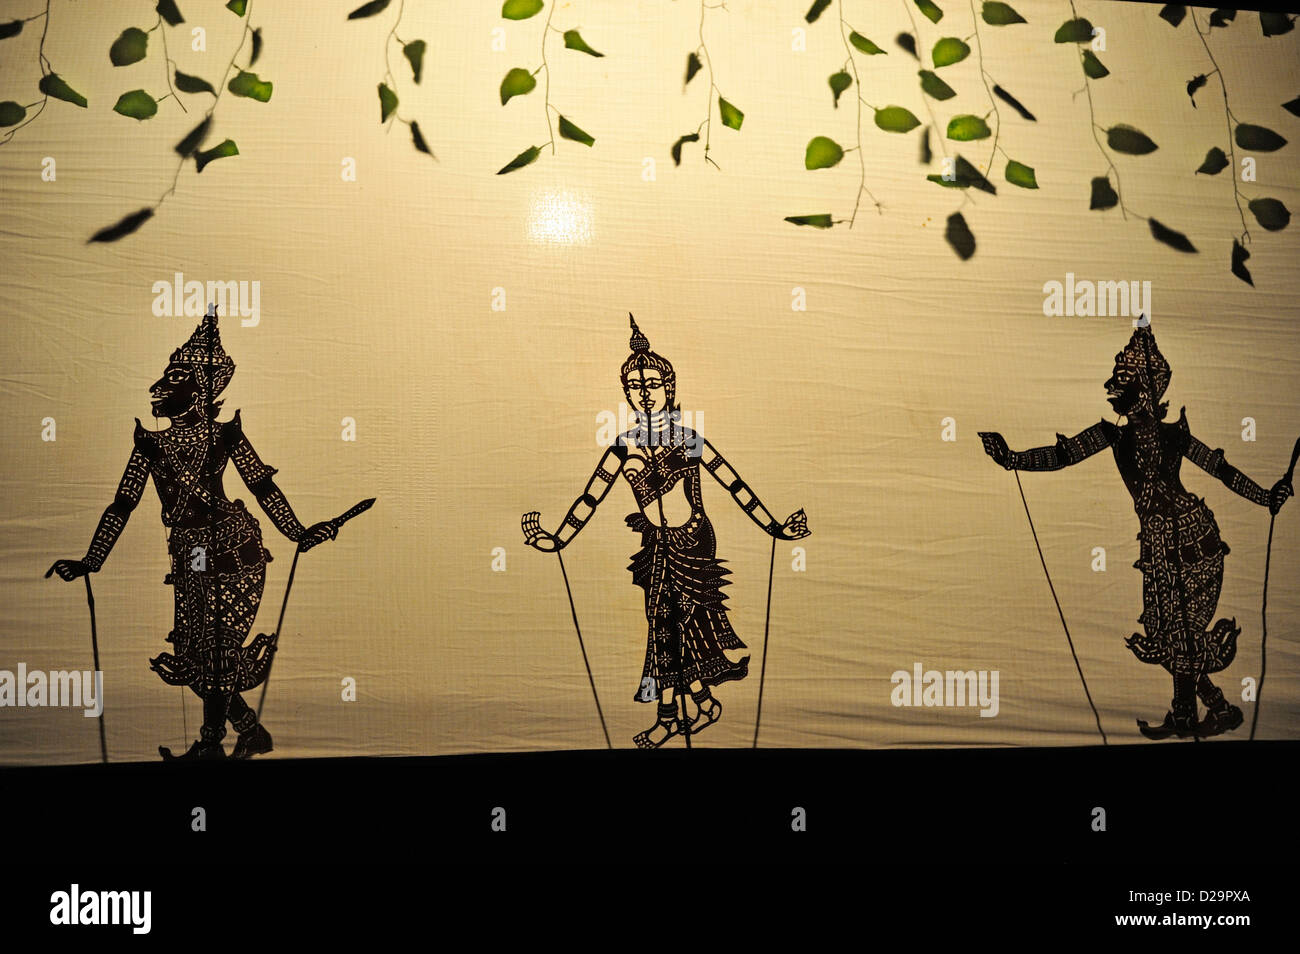 Traditional Cambodian marionette show / shadow puppets, Siem Reap, Cambodia - Stock Image